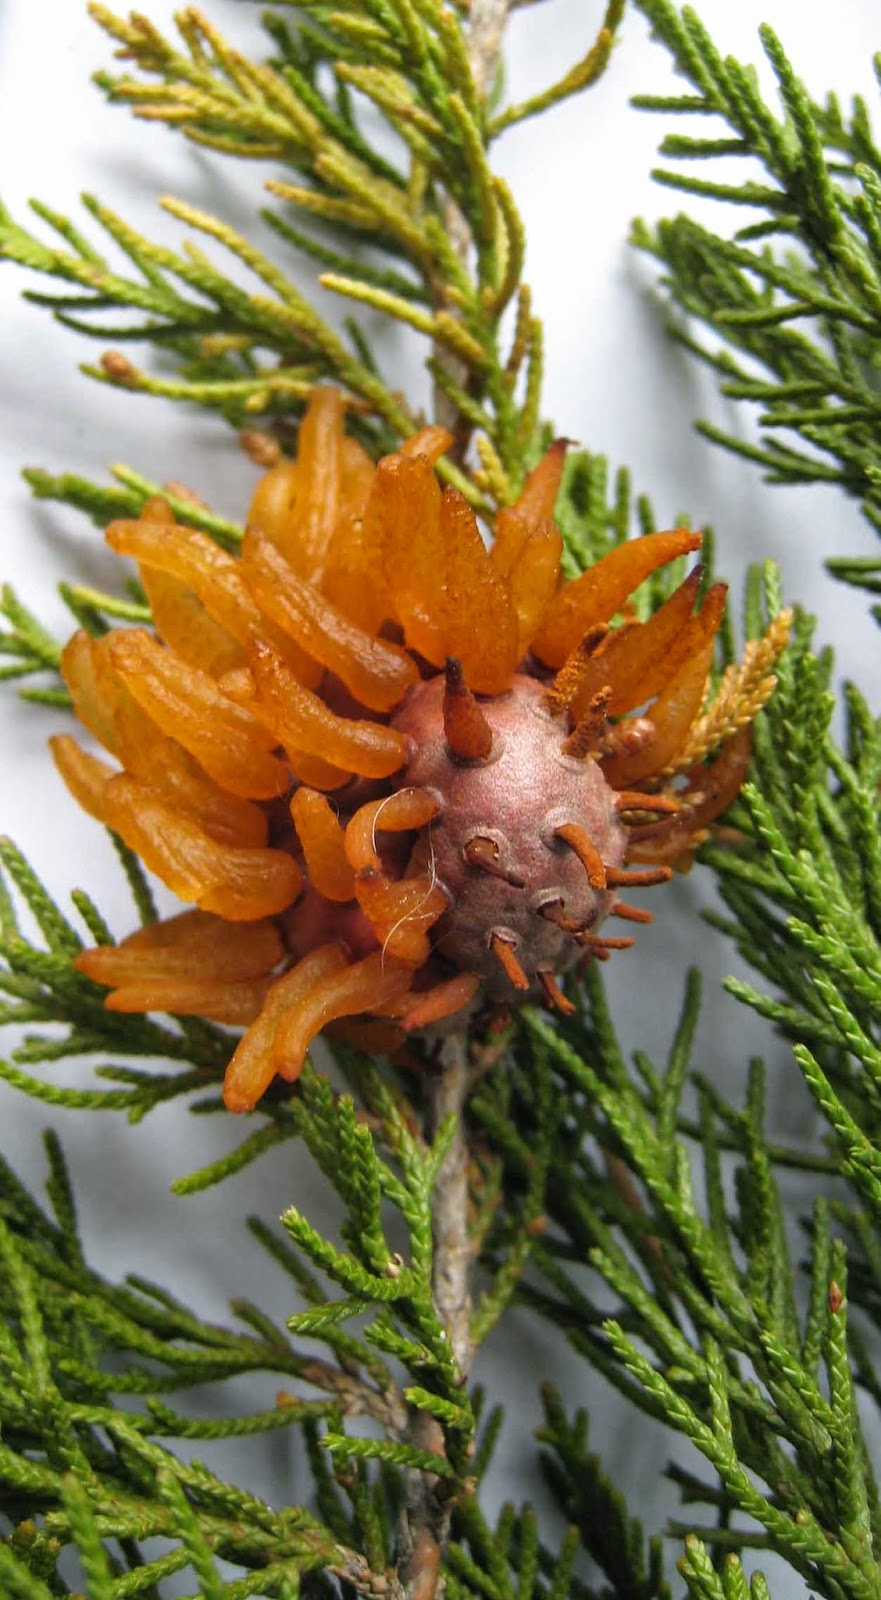 close-up of cedar-apple rust fungus